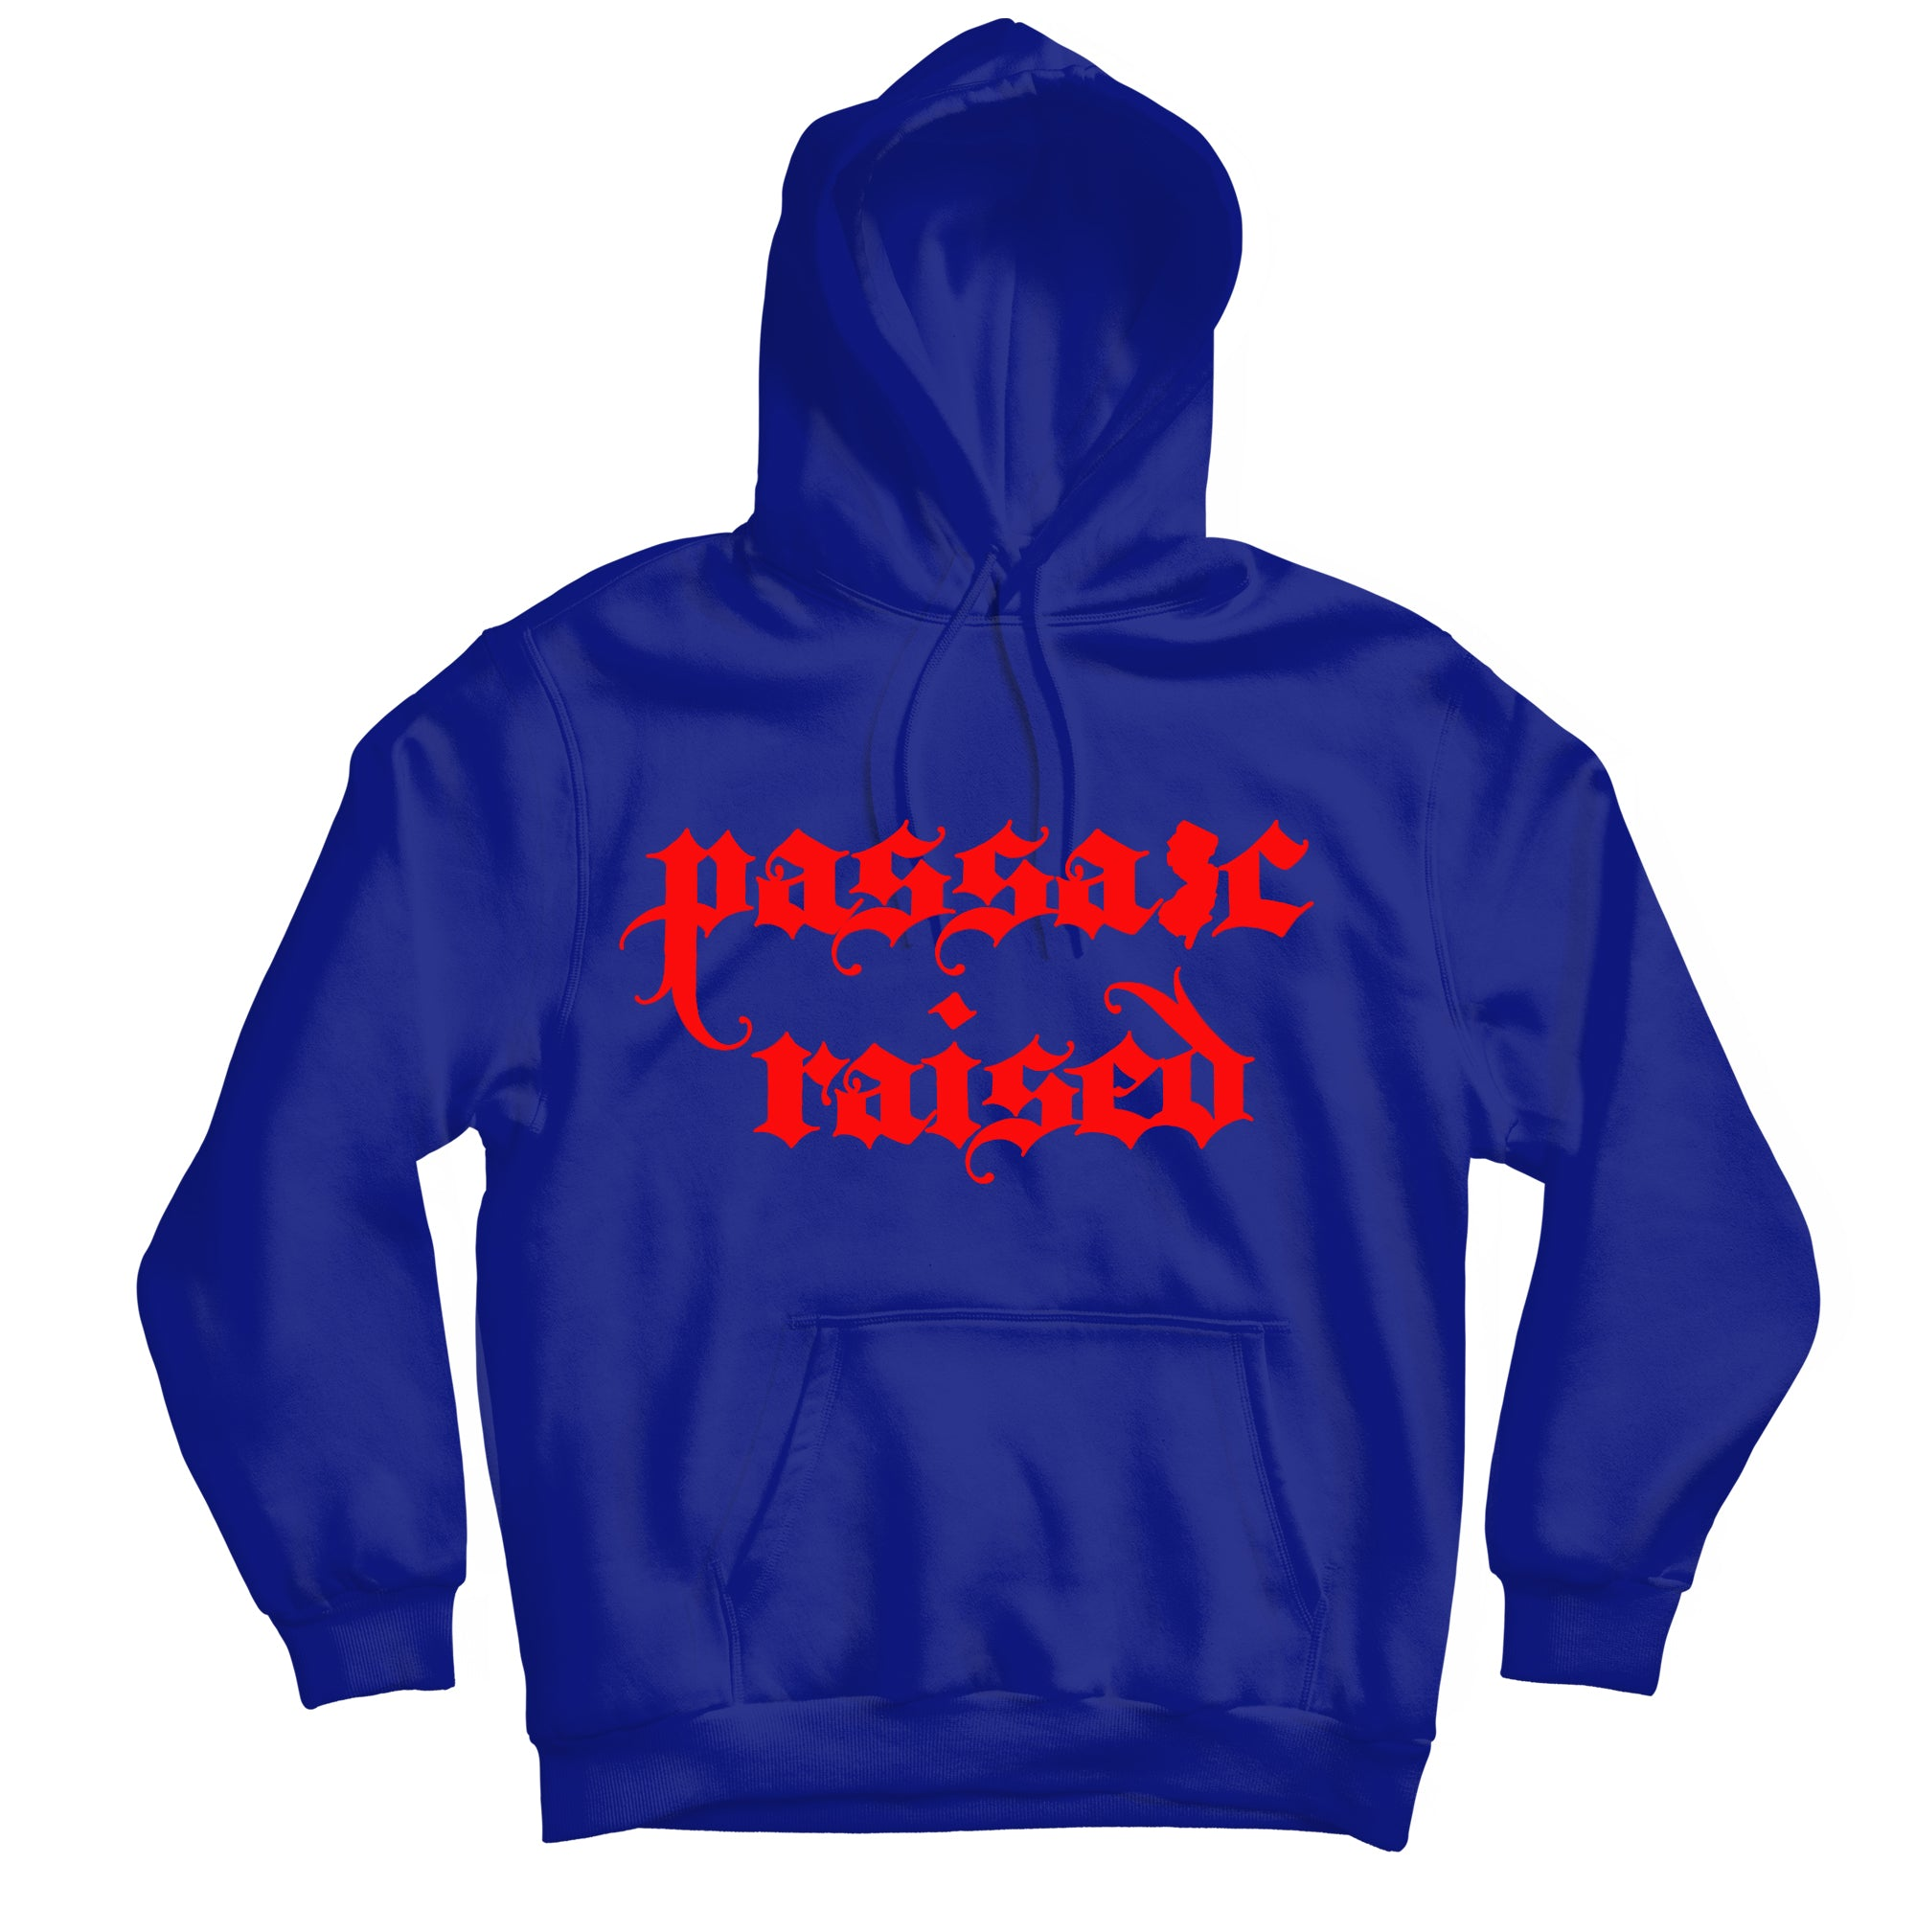 Passaic Raised Hoodie - TOPS, TSS CUSTOM GRPHX, SNEAKER STUDIO, GOLDEN GILT, DESIGN BY TSS